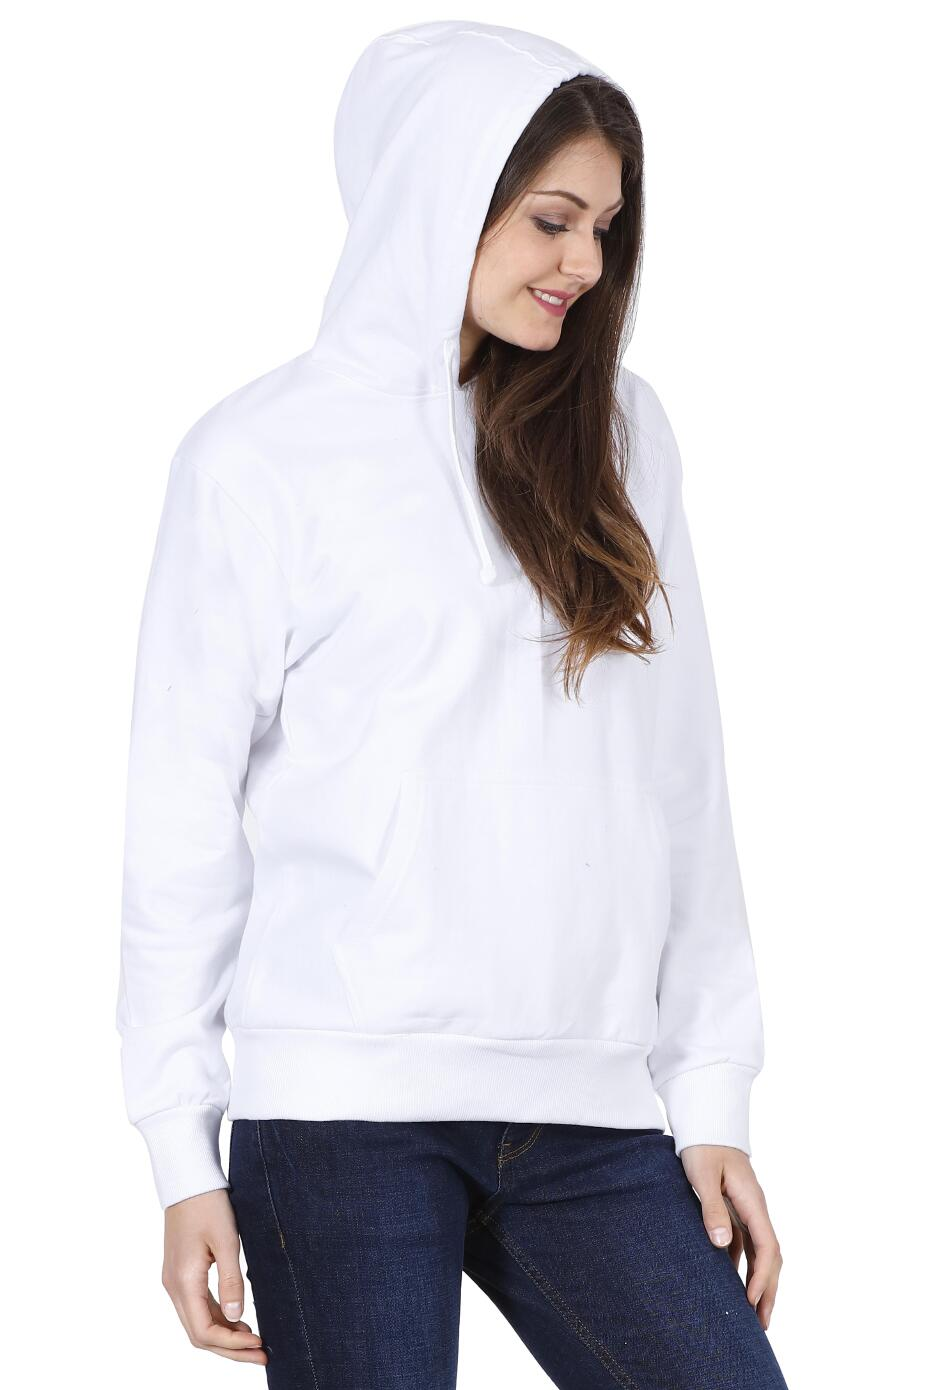 white sweatshirt womens